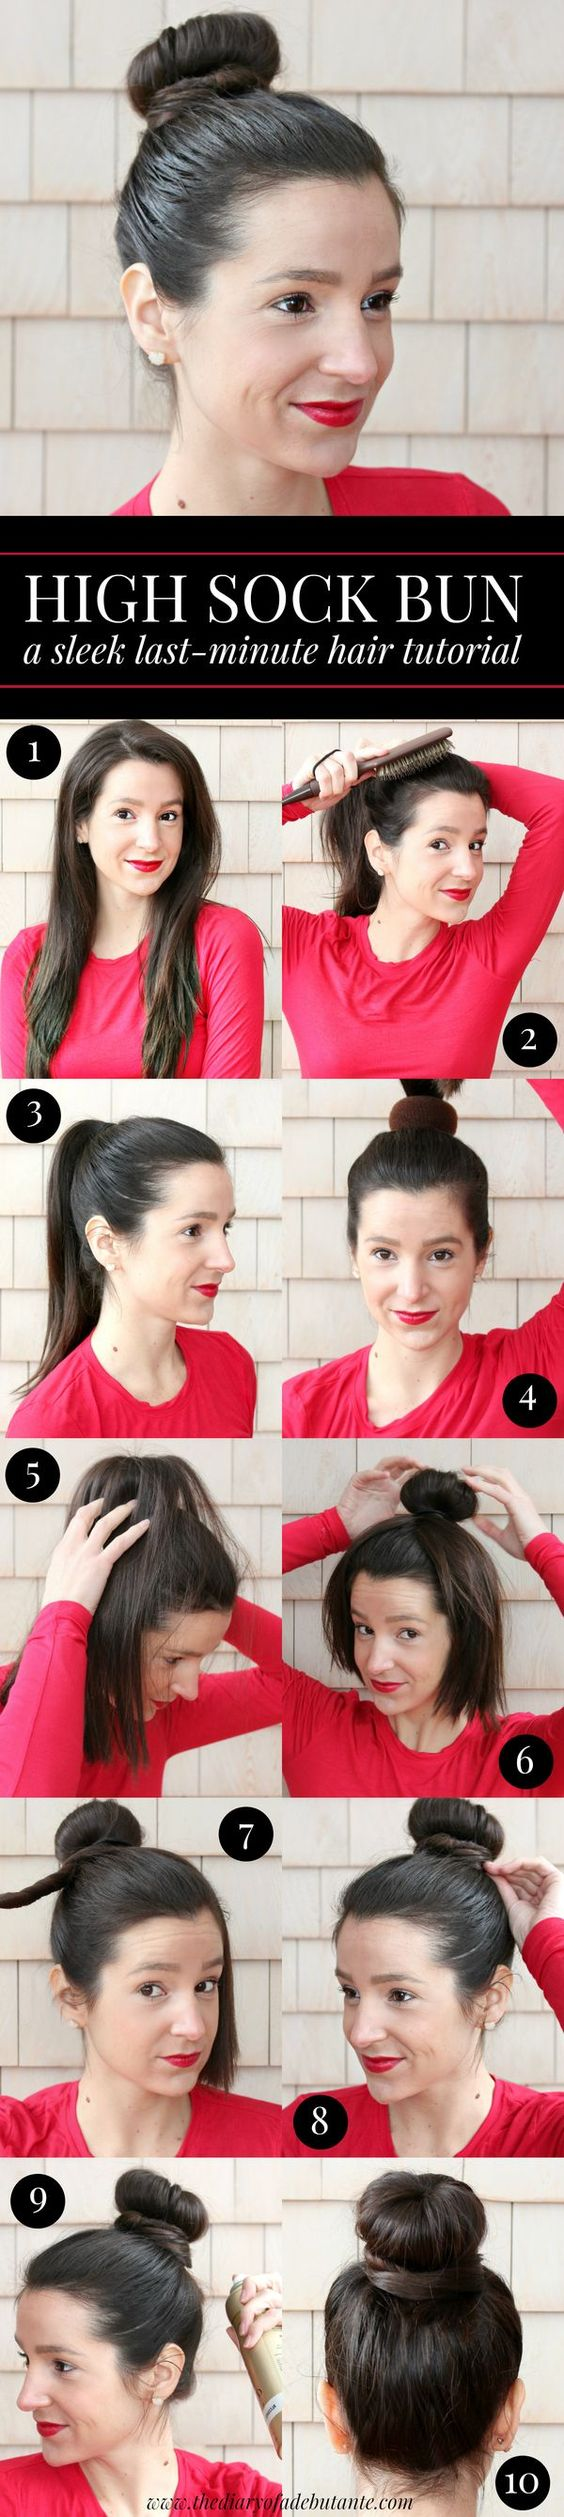 Sleek high sock bun hair tutorial. This quick and easy updo hairstyle works best with 2nd day hair and takes no more than 3 minutes with the right glosser paddle brush.